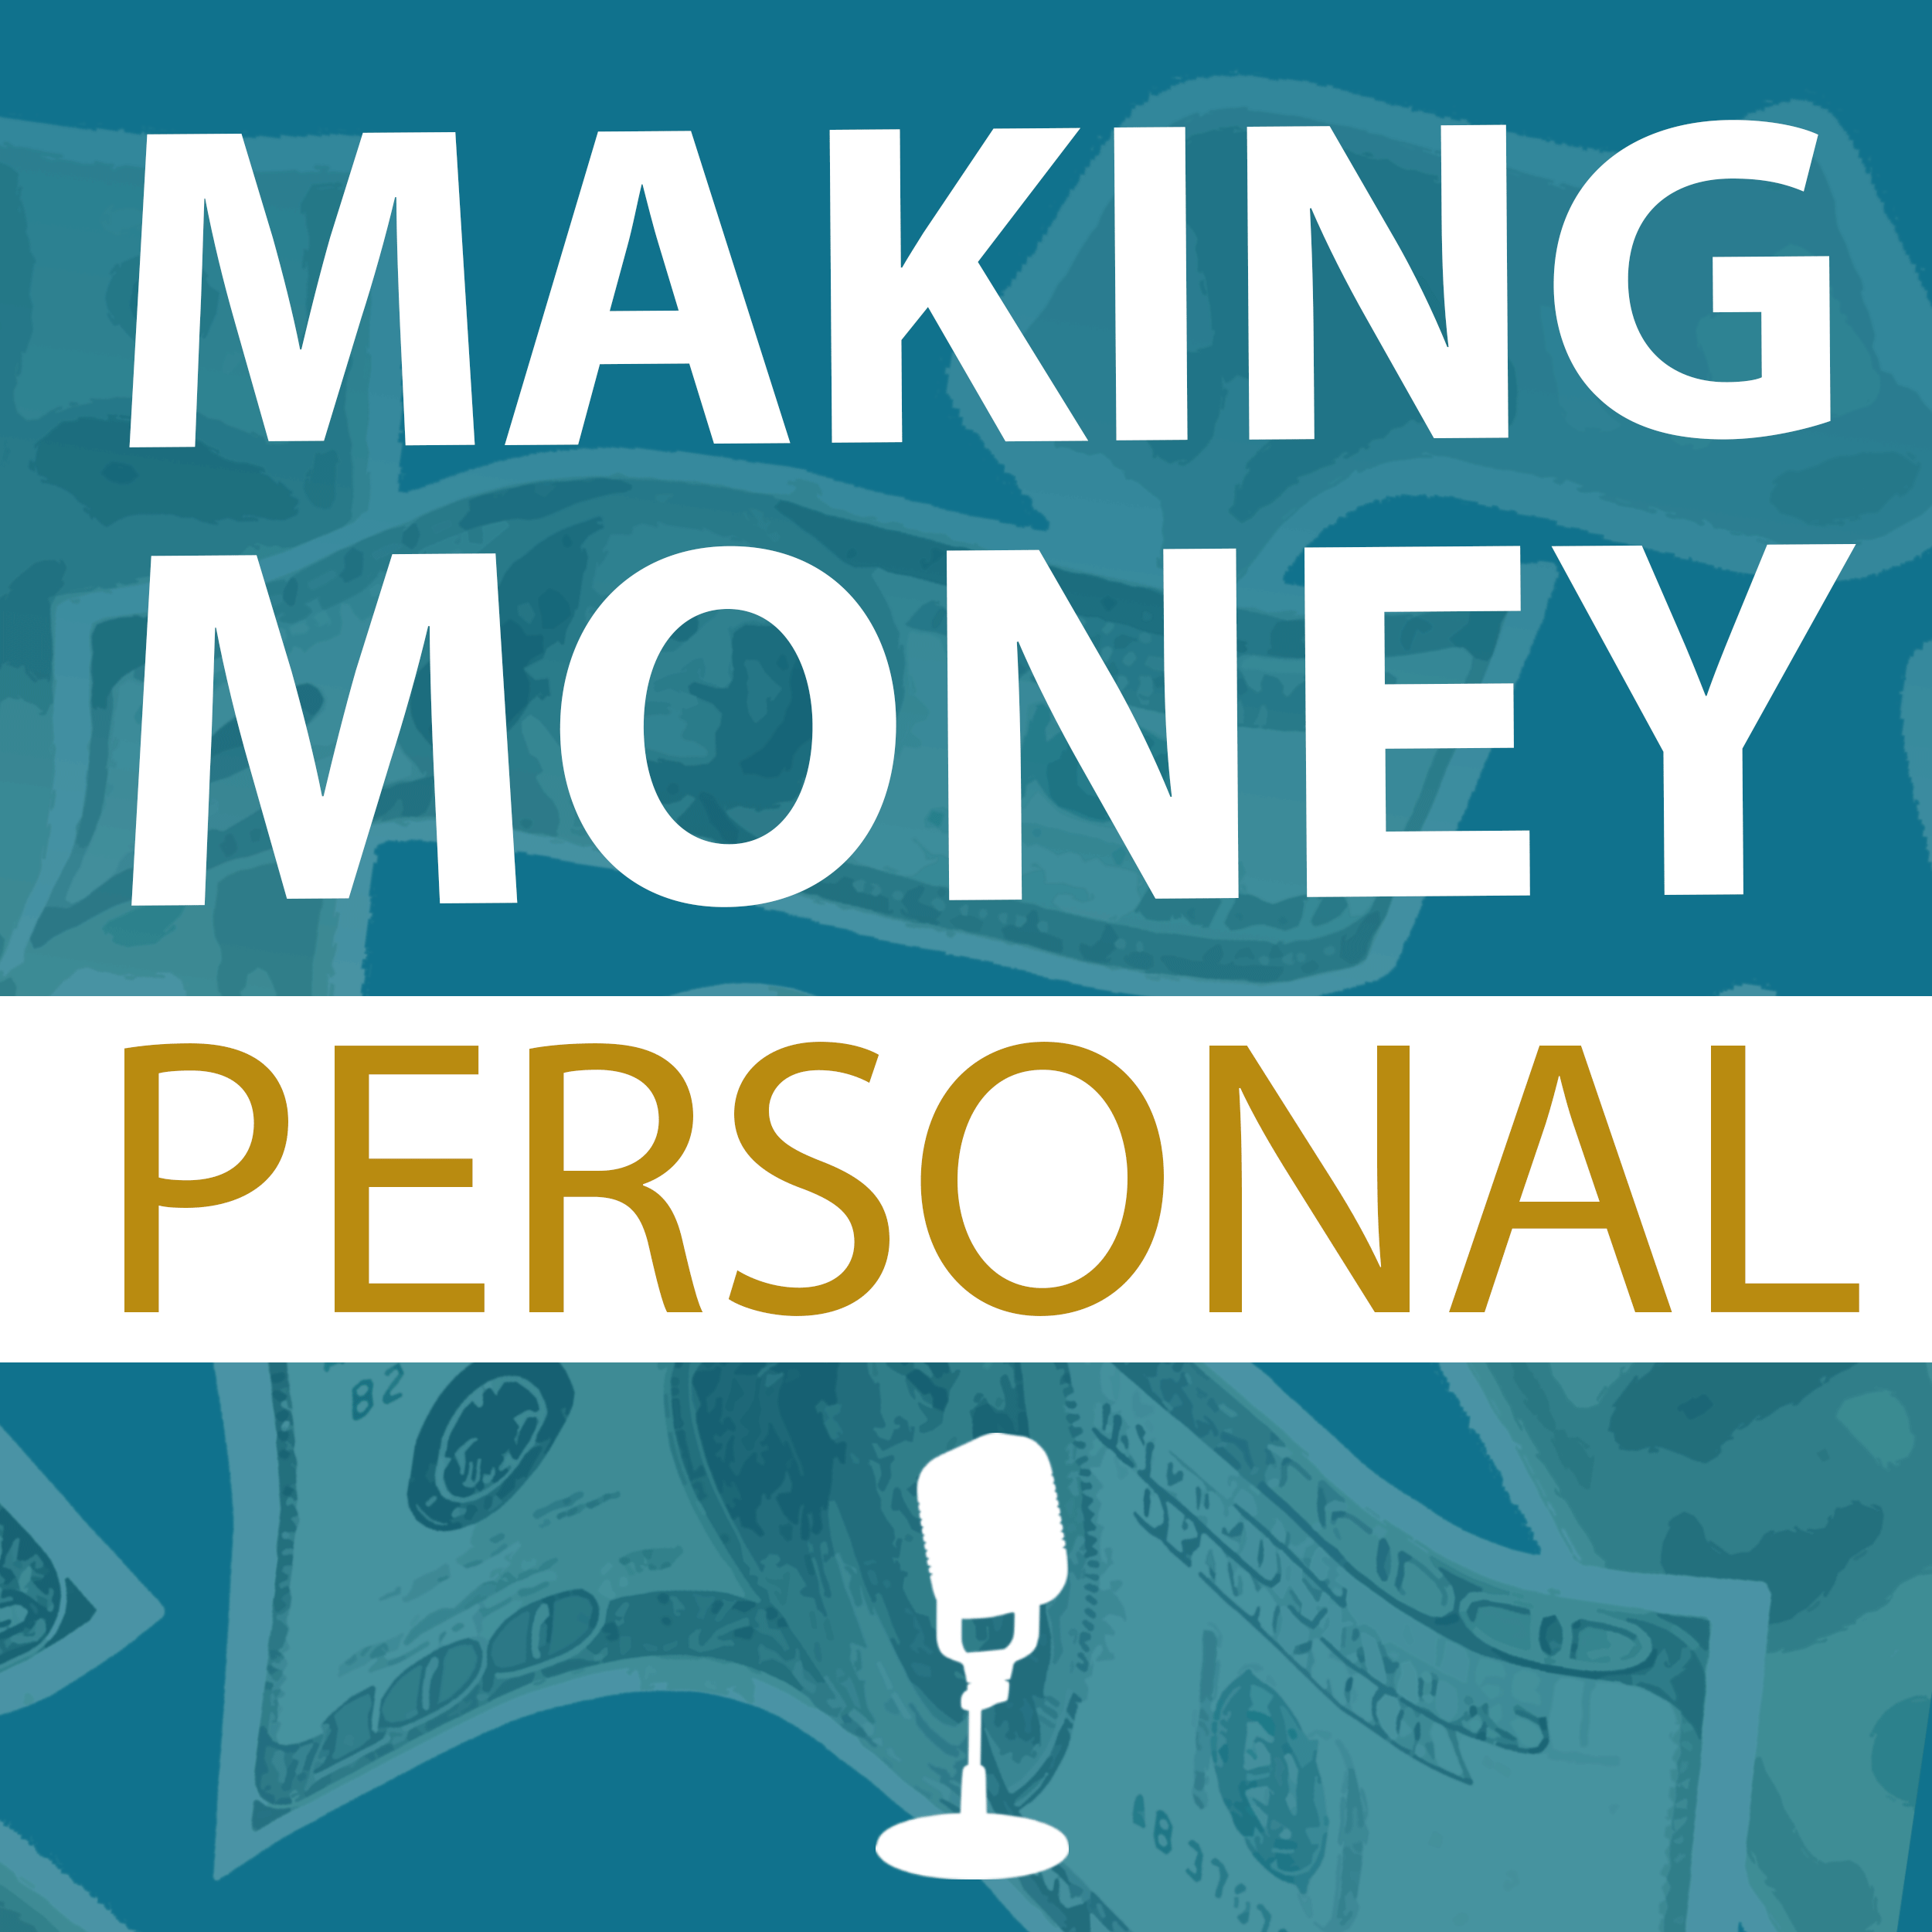 Making Money Personal